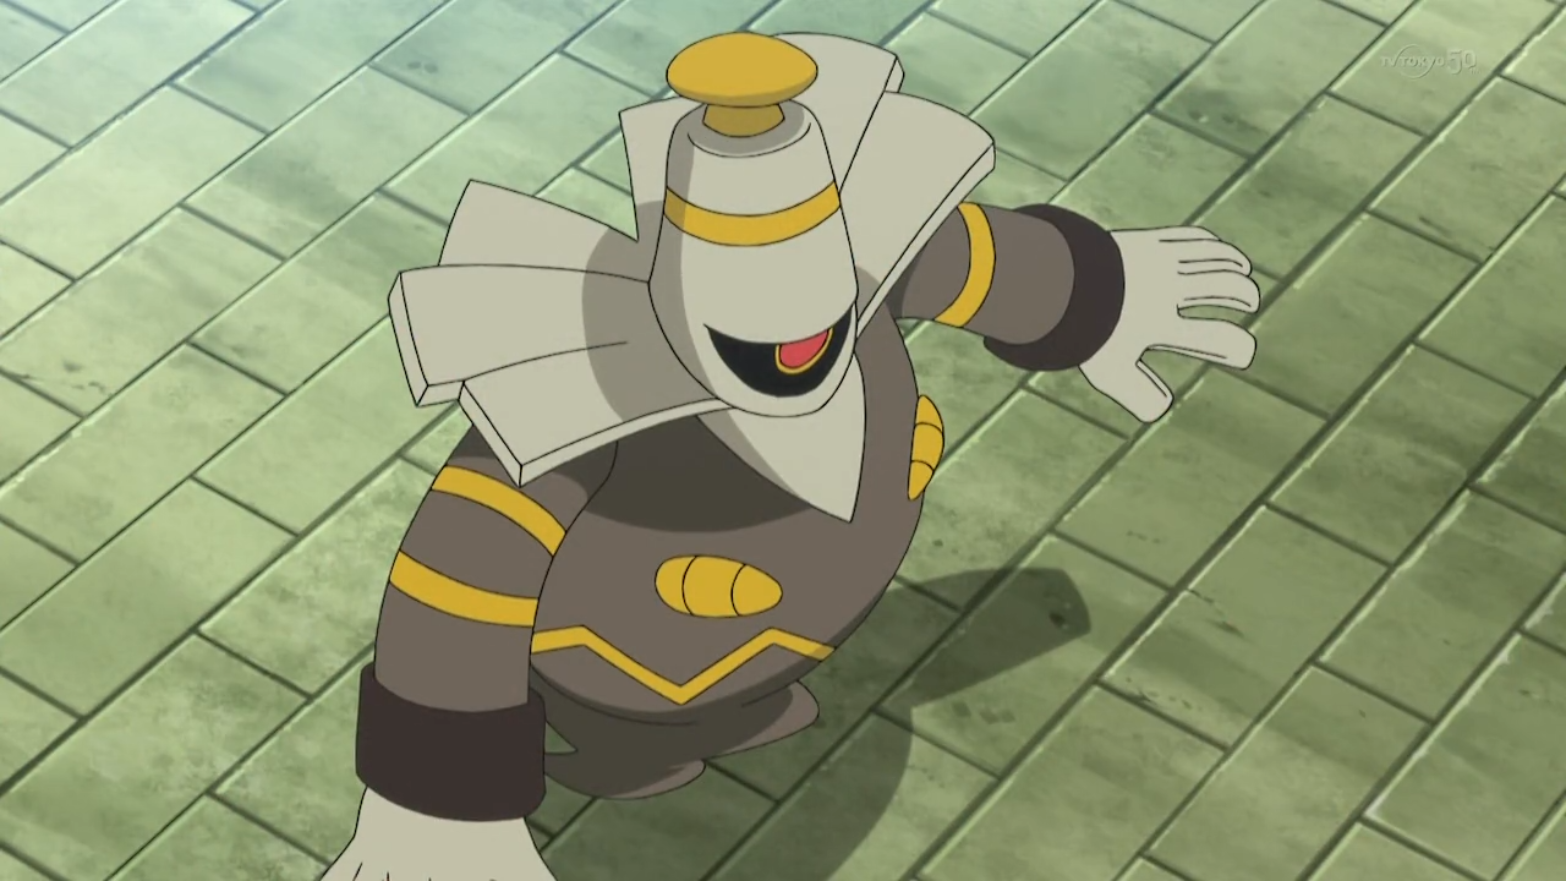 Farrell used his Dusknoir in his battle against Nico and his Fletchinder. Dusknoir did have the advantage over Fletchinder due to Thunder Punch but Dusknoir was easily knocked out by Fletchinder's Flame Charge.